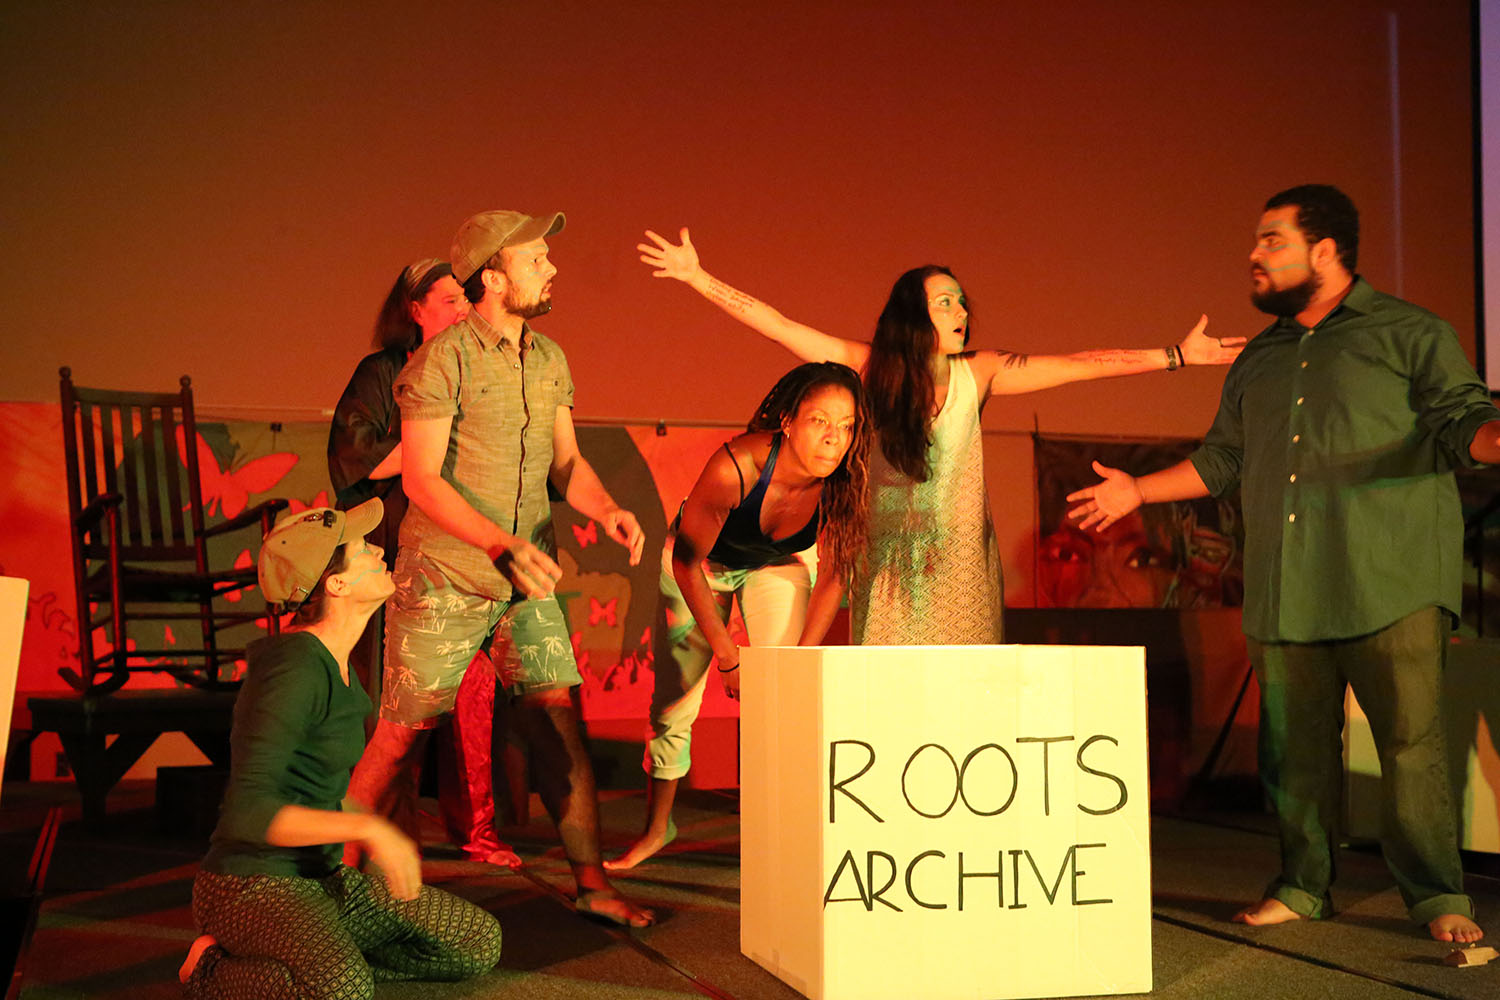 rootsarchive4.jpg